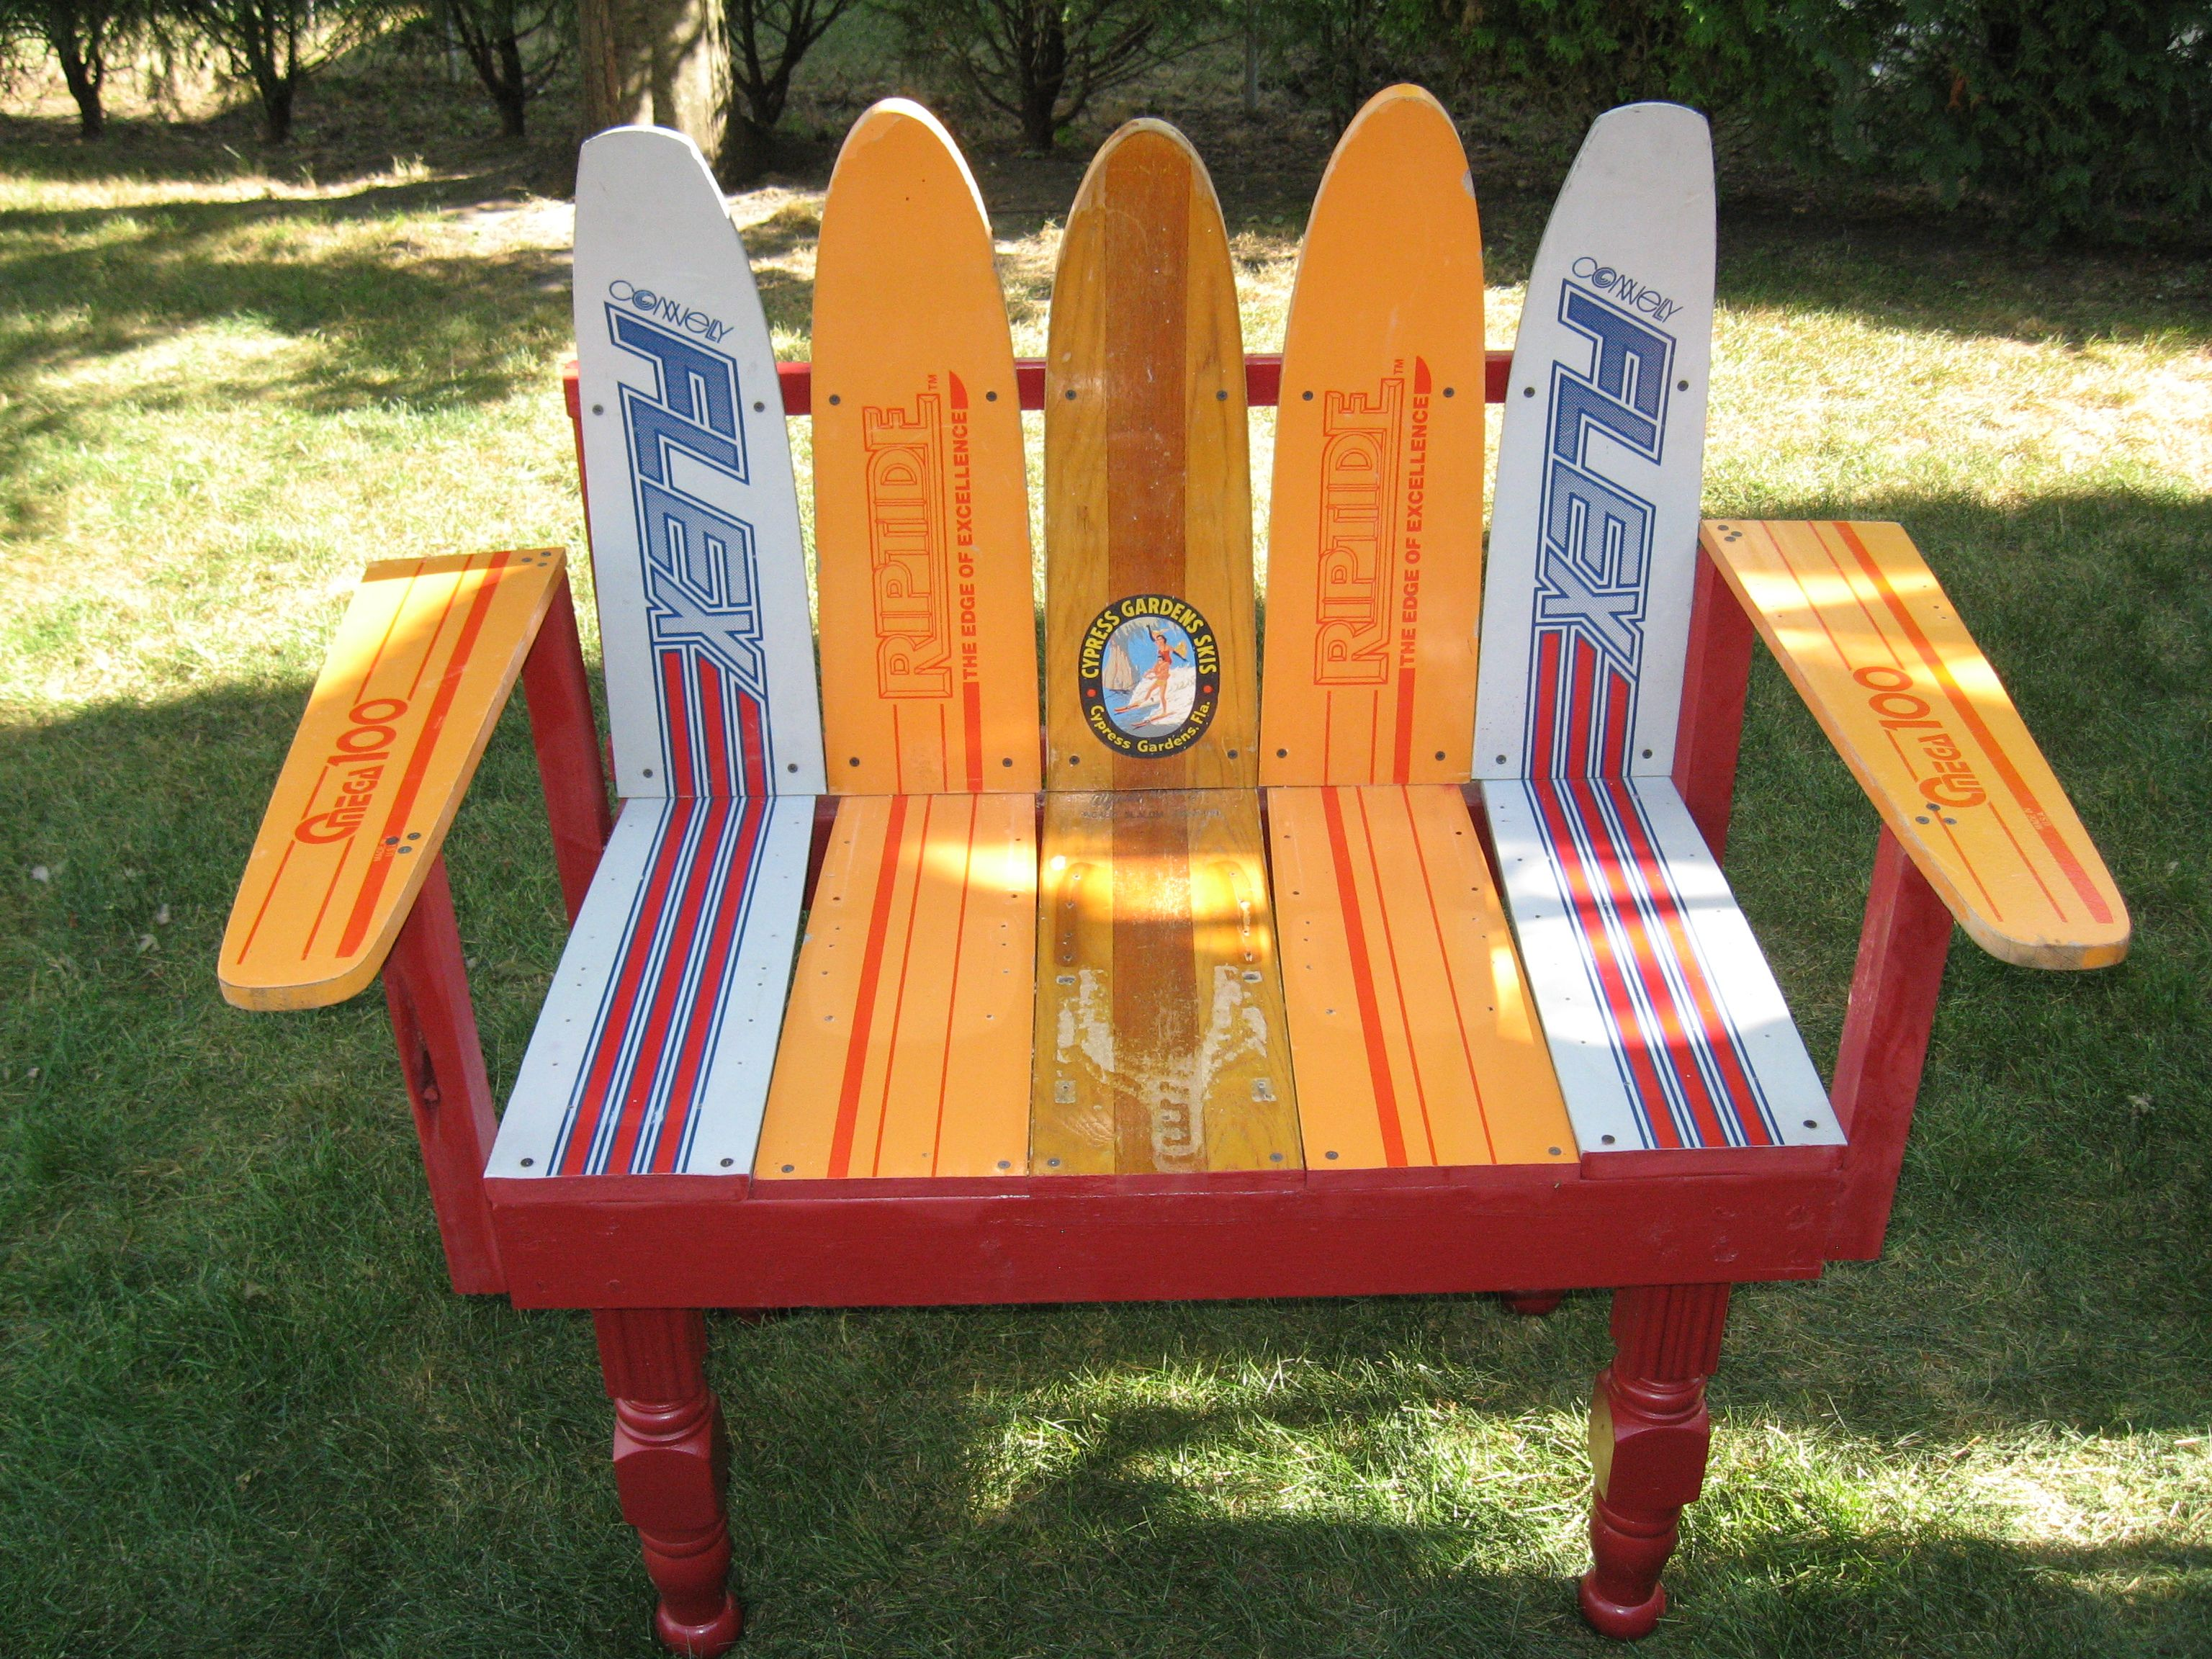 what are pool chairs made out of butterfly chair covers ikea fun bench we from vintage water skis products i